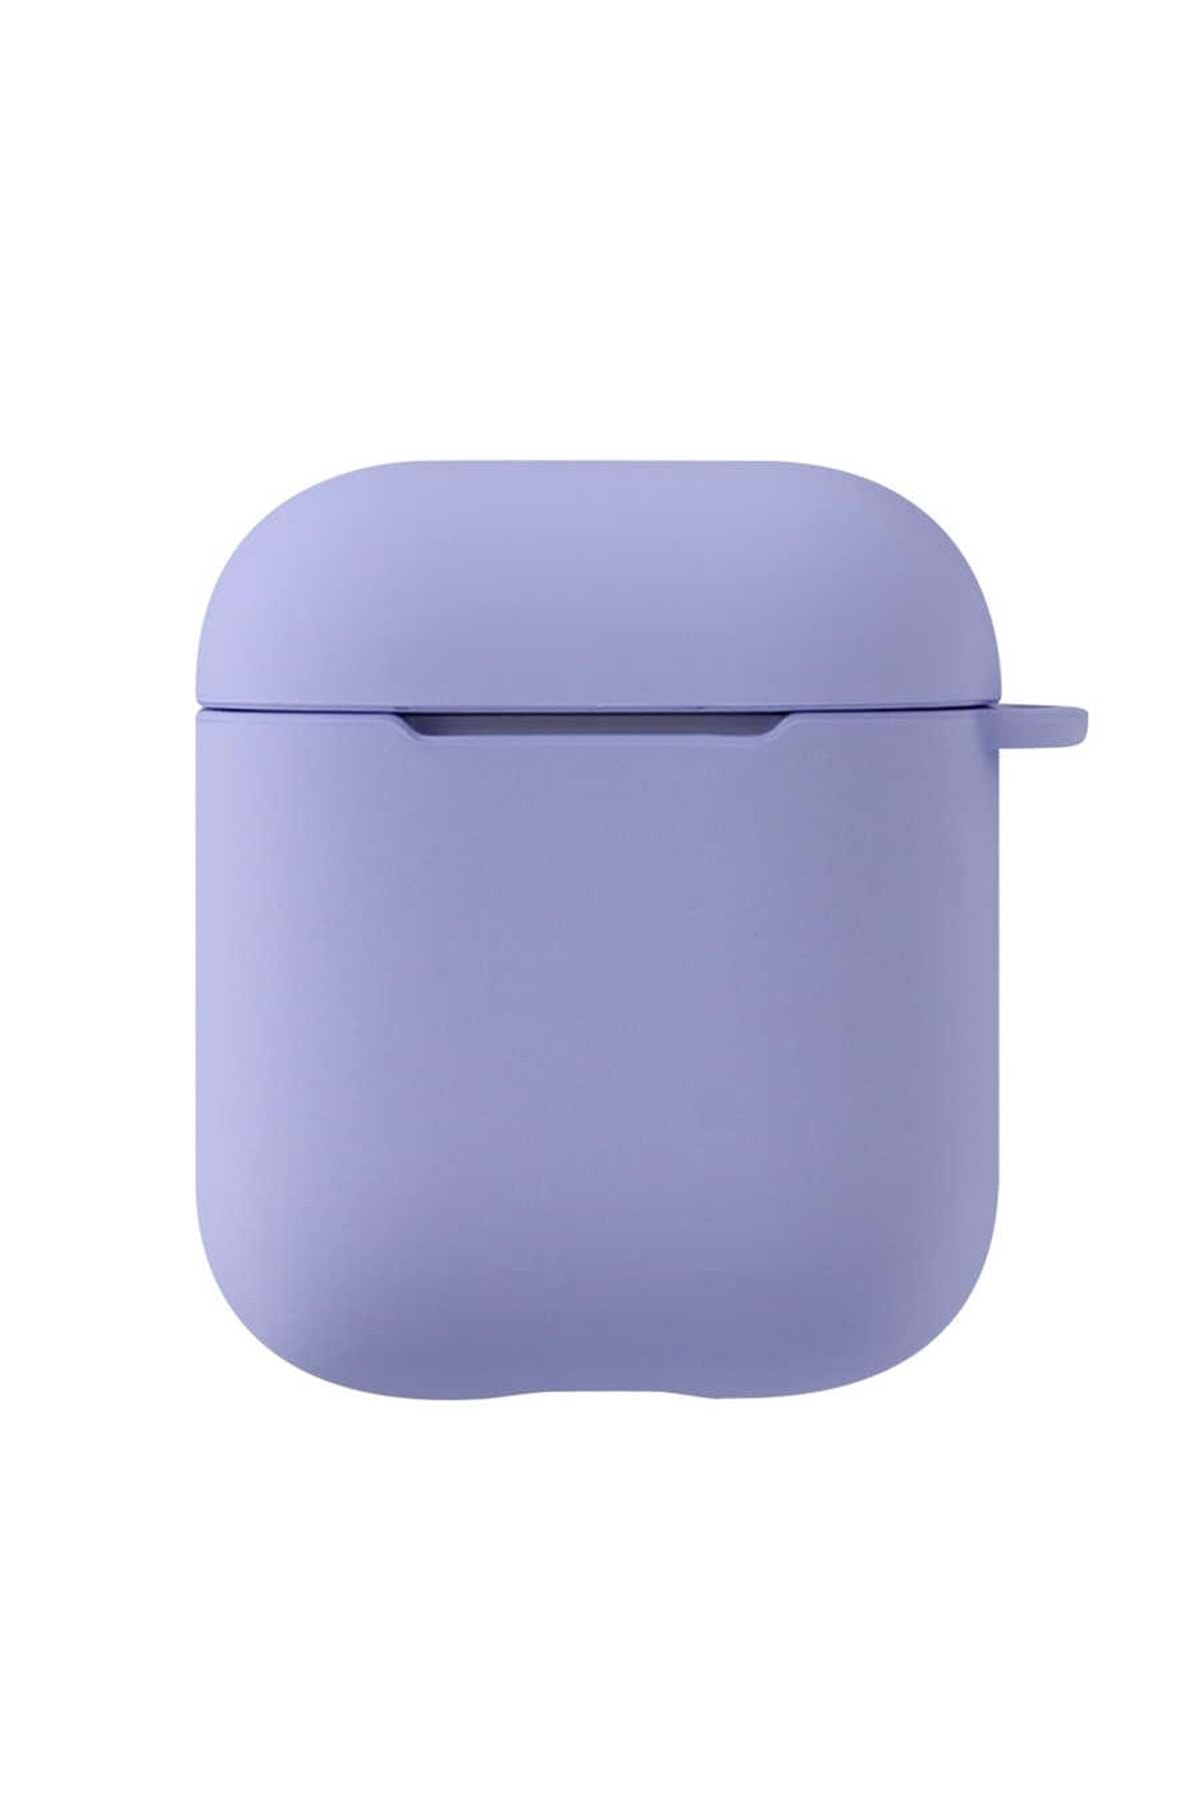 zore Apple Airpods Kılıf Airbag 11 Silikon 1